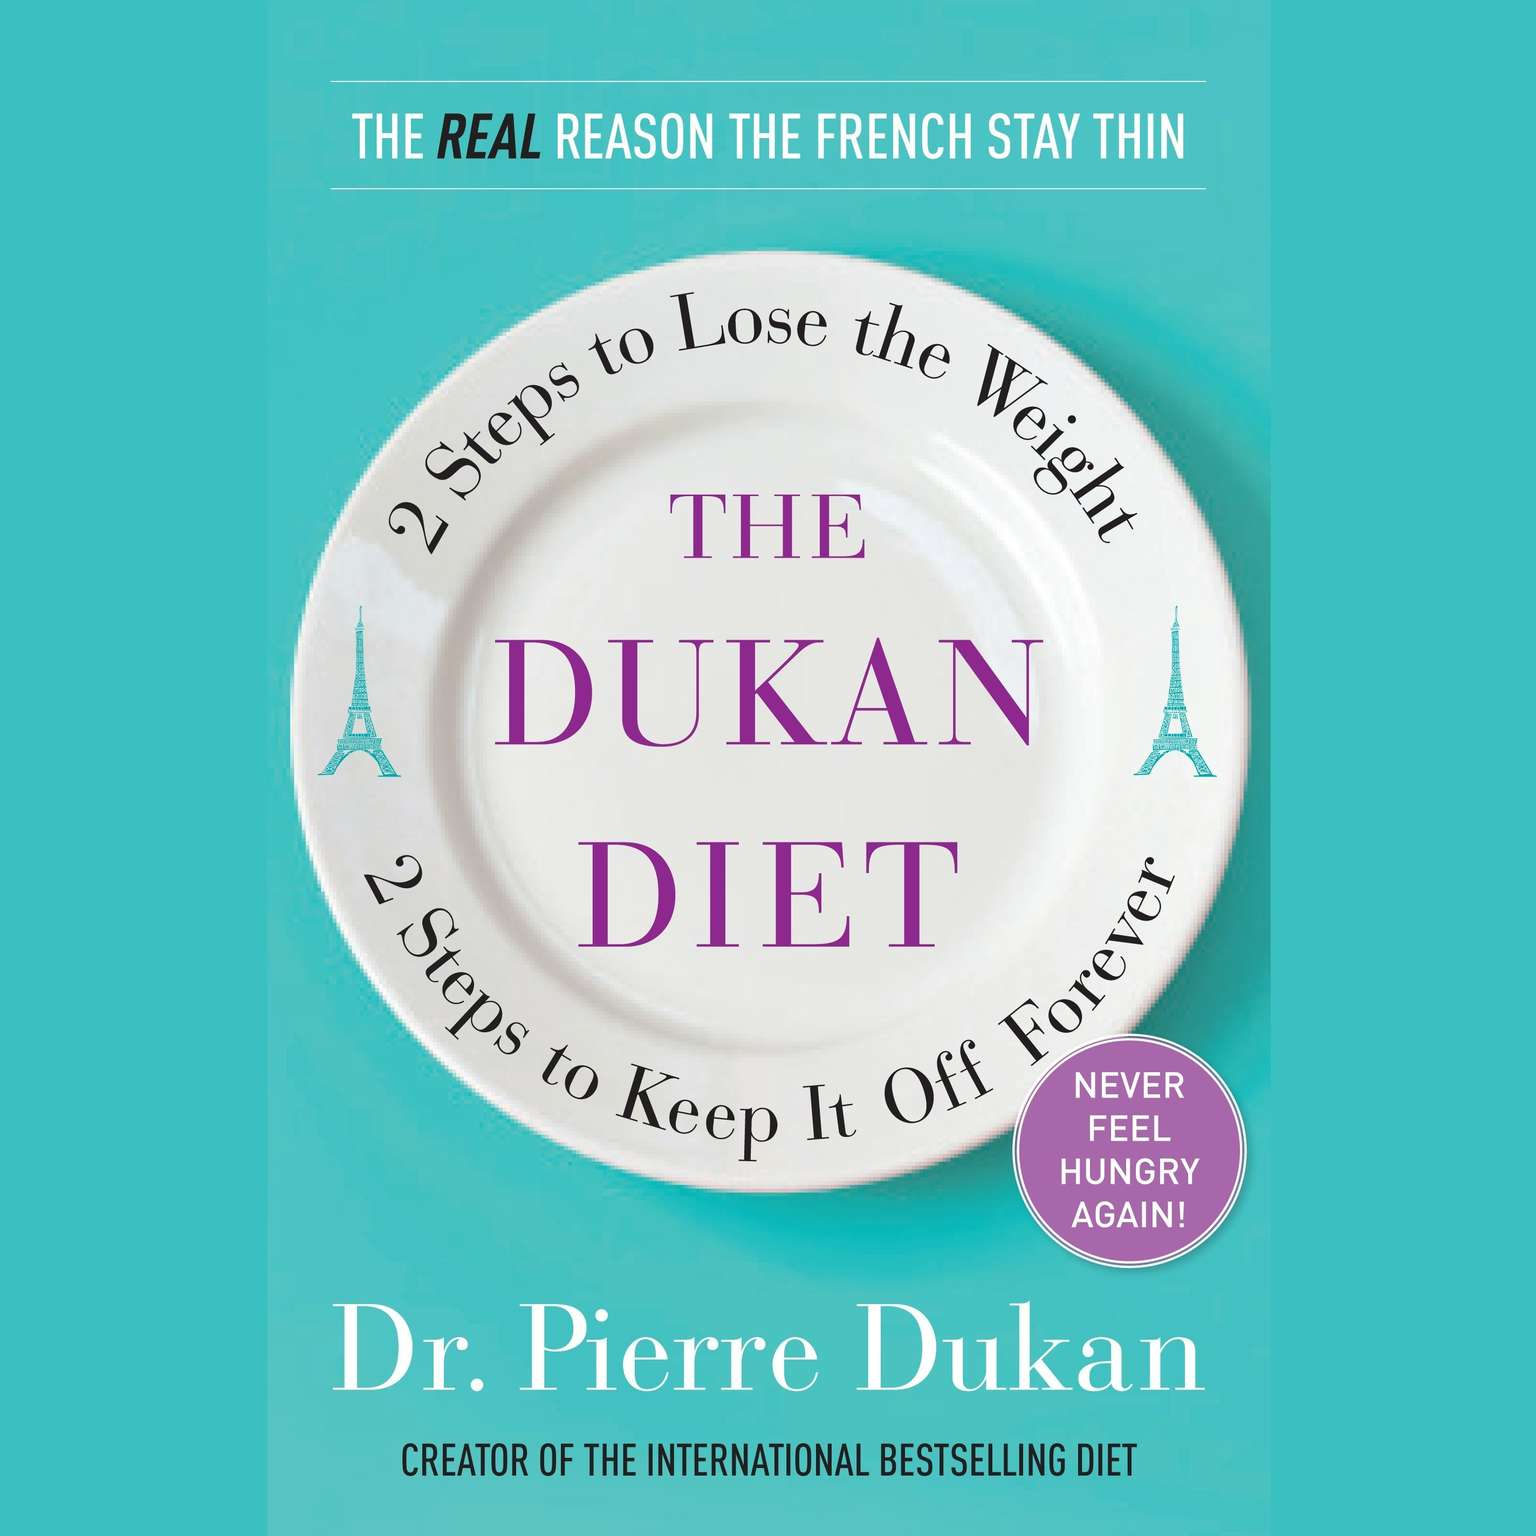 Printable The Dukan Diet: 2 Steps to Lose the Weight, 2 Steps to Keep It Off Forever Audiobook Cover Art